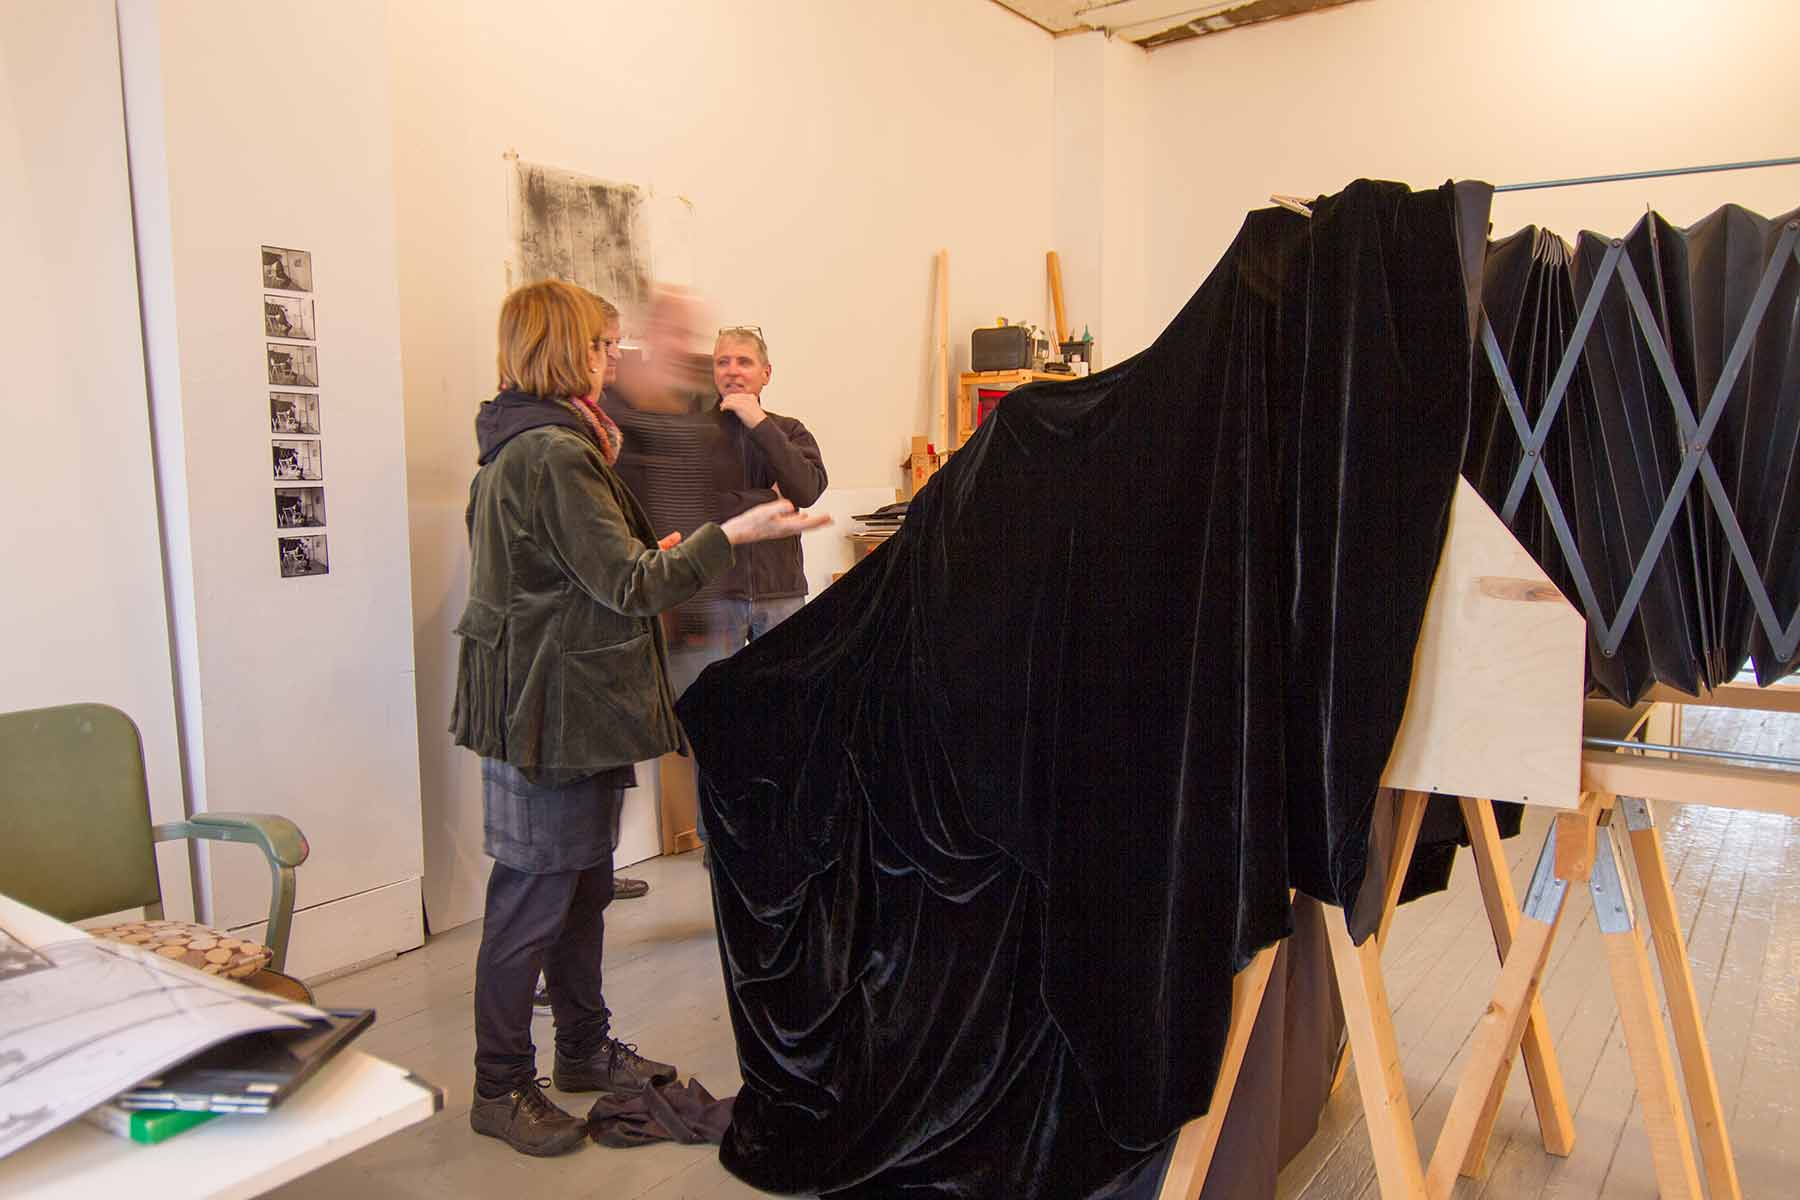 photo showing artist Lynda Gammon and camera wtih group